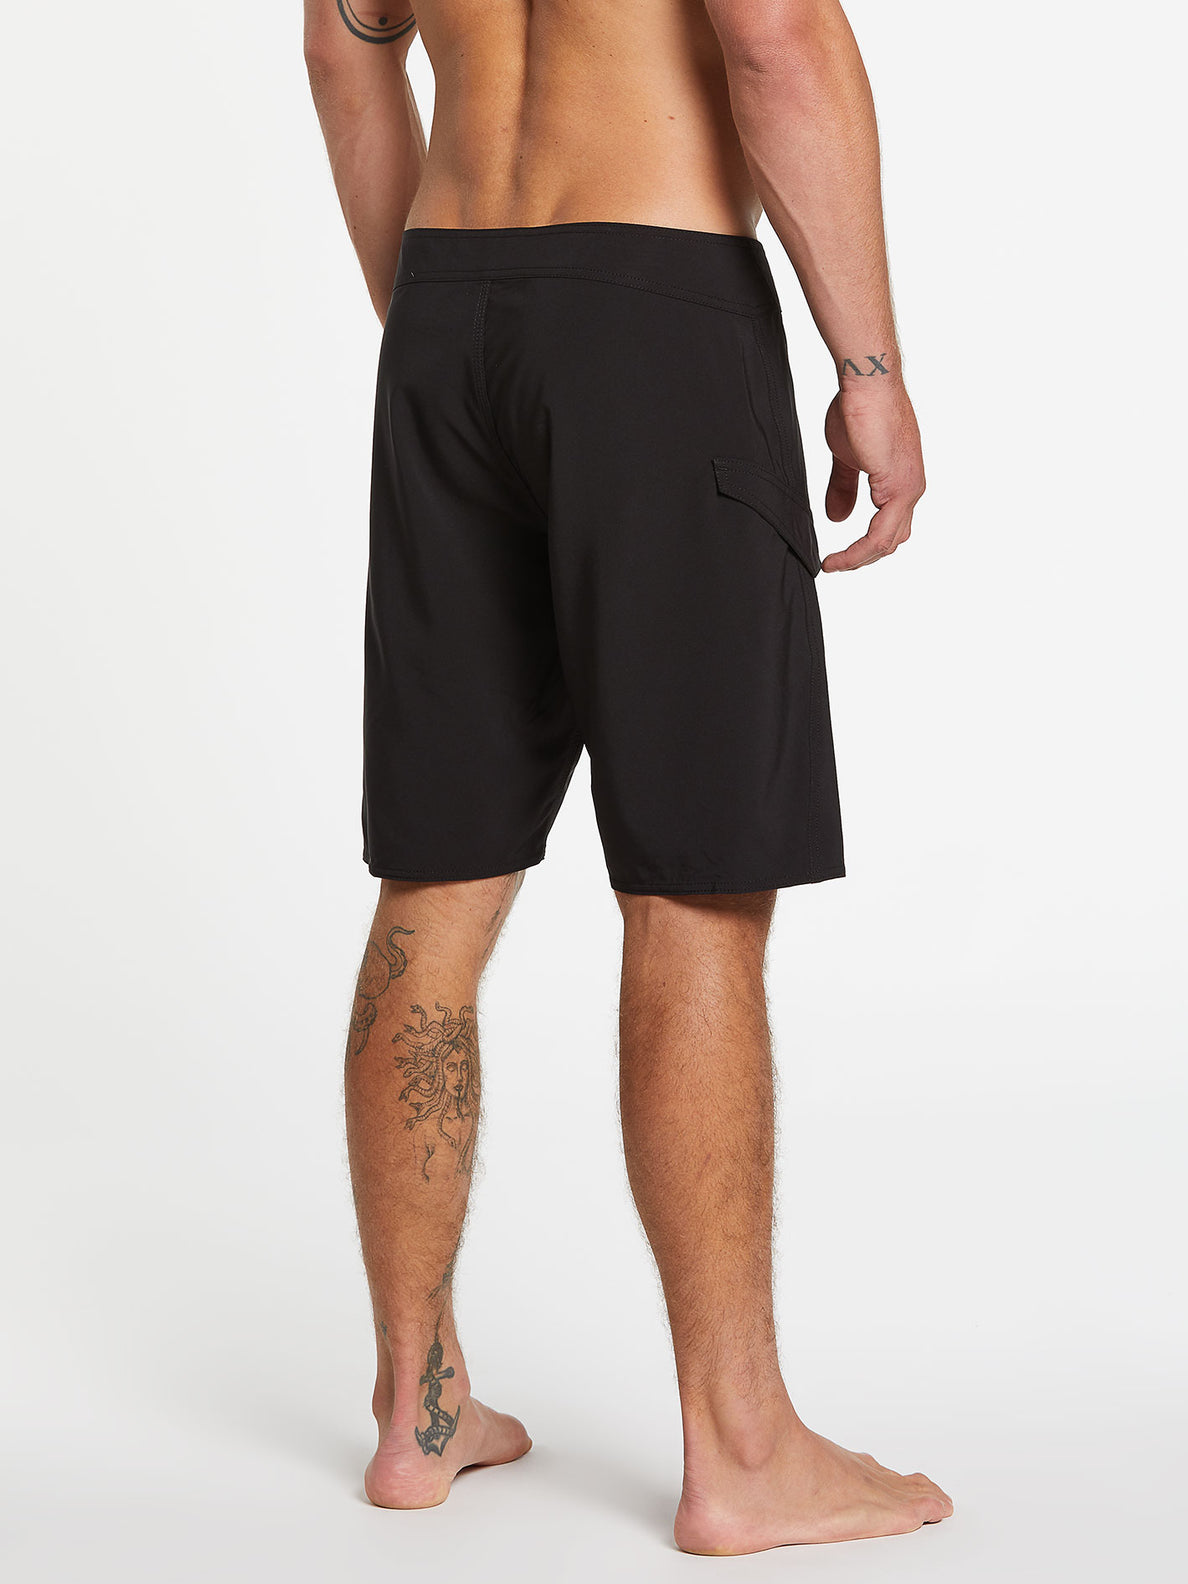 Lido Solid Mod-Trunks - Black (A0812021_BLK) [2]